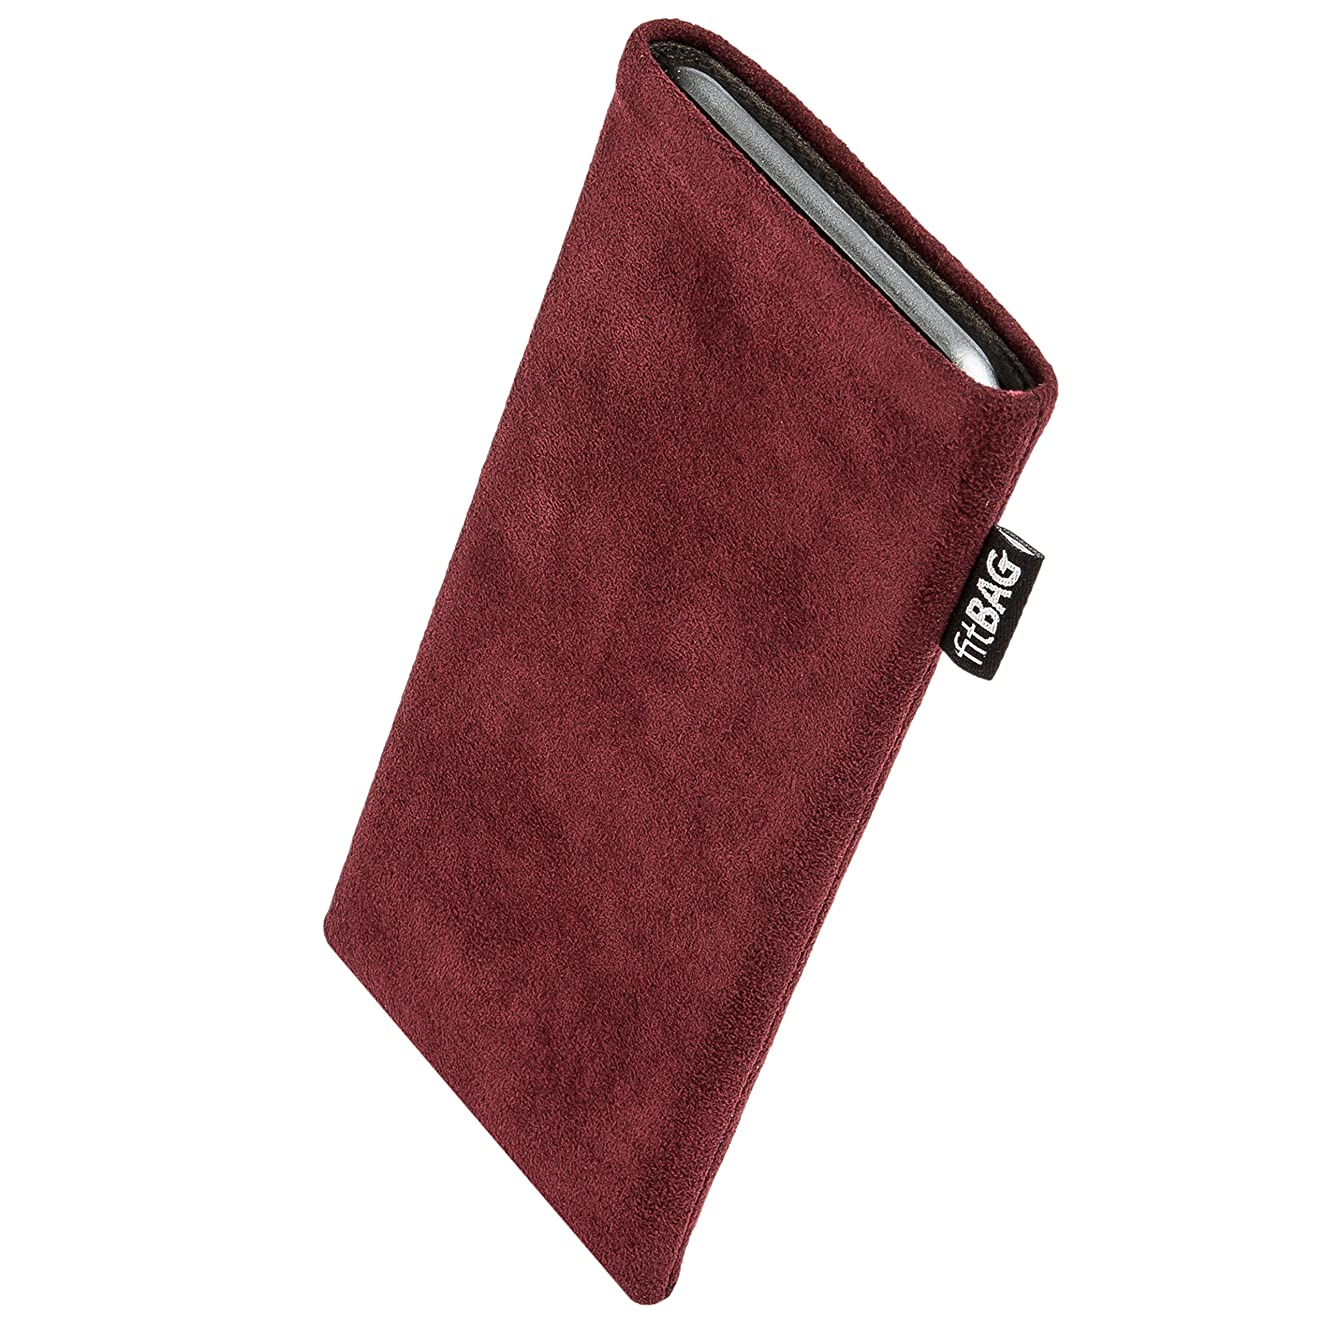 fitBAG Classic Burgundy Custom Tailored Sleeve for Google Pixel 3a XL   Made in Germany   Genuine Alcantara Pouch case Cover with Microfibre Lining for Display Cleaning